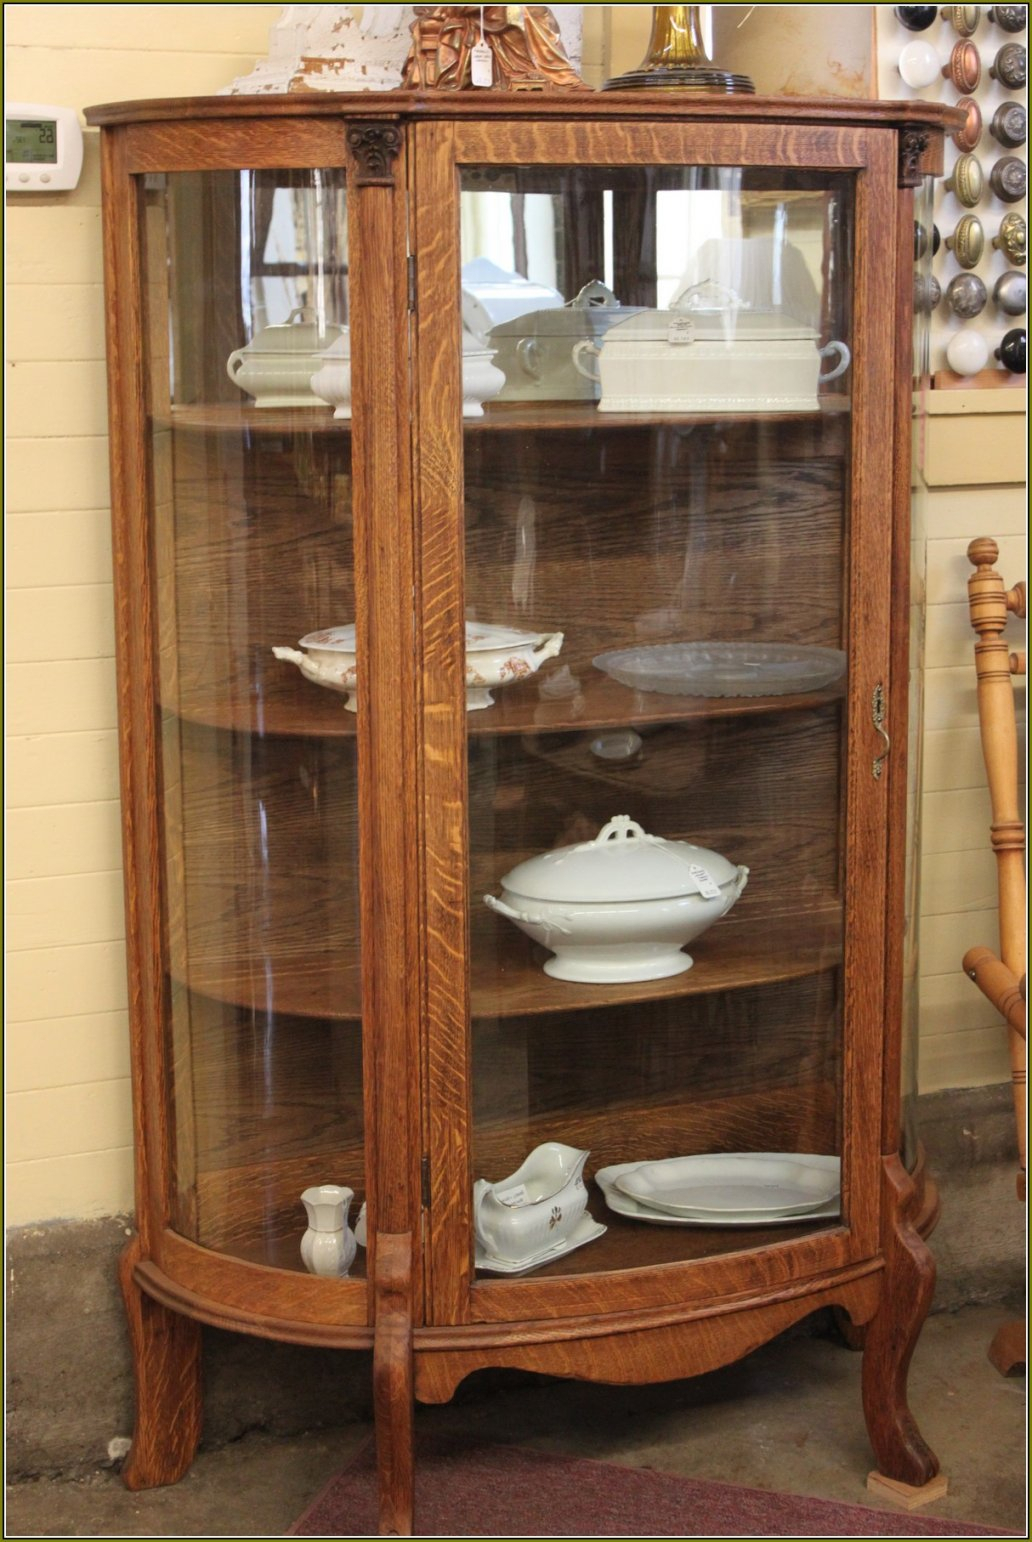 Antique Brown Wooden Glass Door Display Cabinets Of Amazing Glass inside  measurements 1032 X 1542 - Antique Wood And Glass Display Cabinets • Display Cabinet